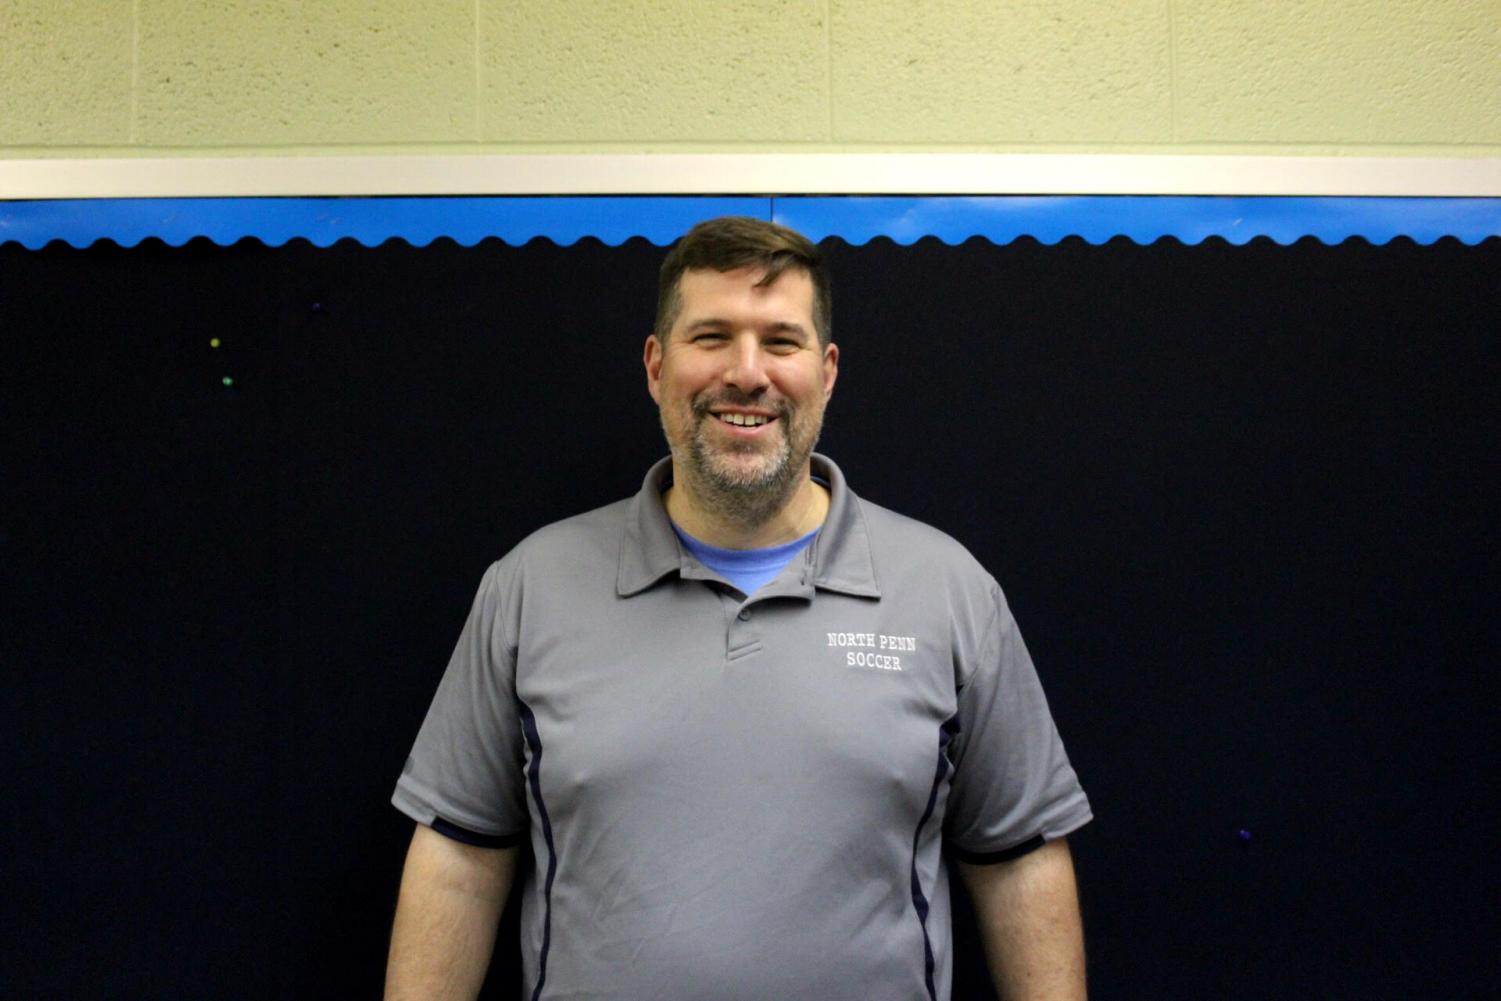 NPHS Social Studies Teacher Mr. Joel Evans, the 2017-18 Teacher of the Year, continues to inspire students in the classroom at NP.